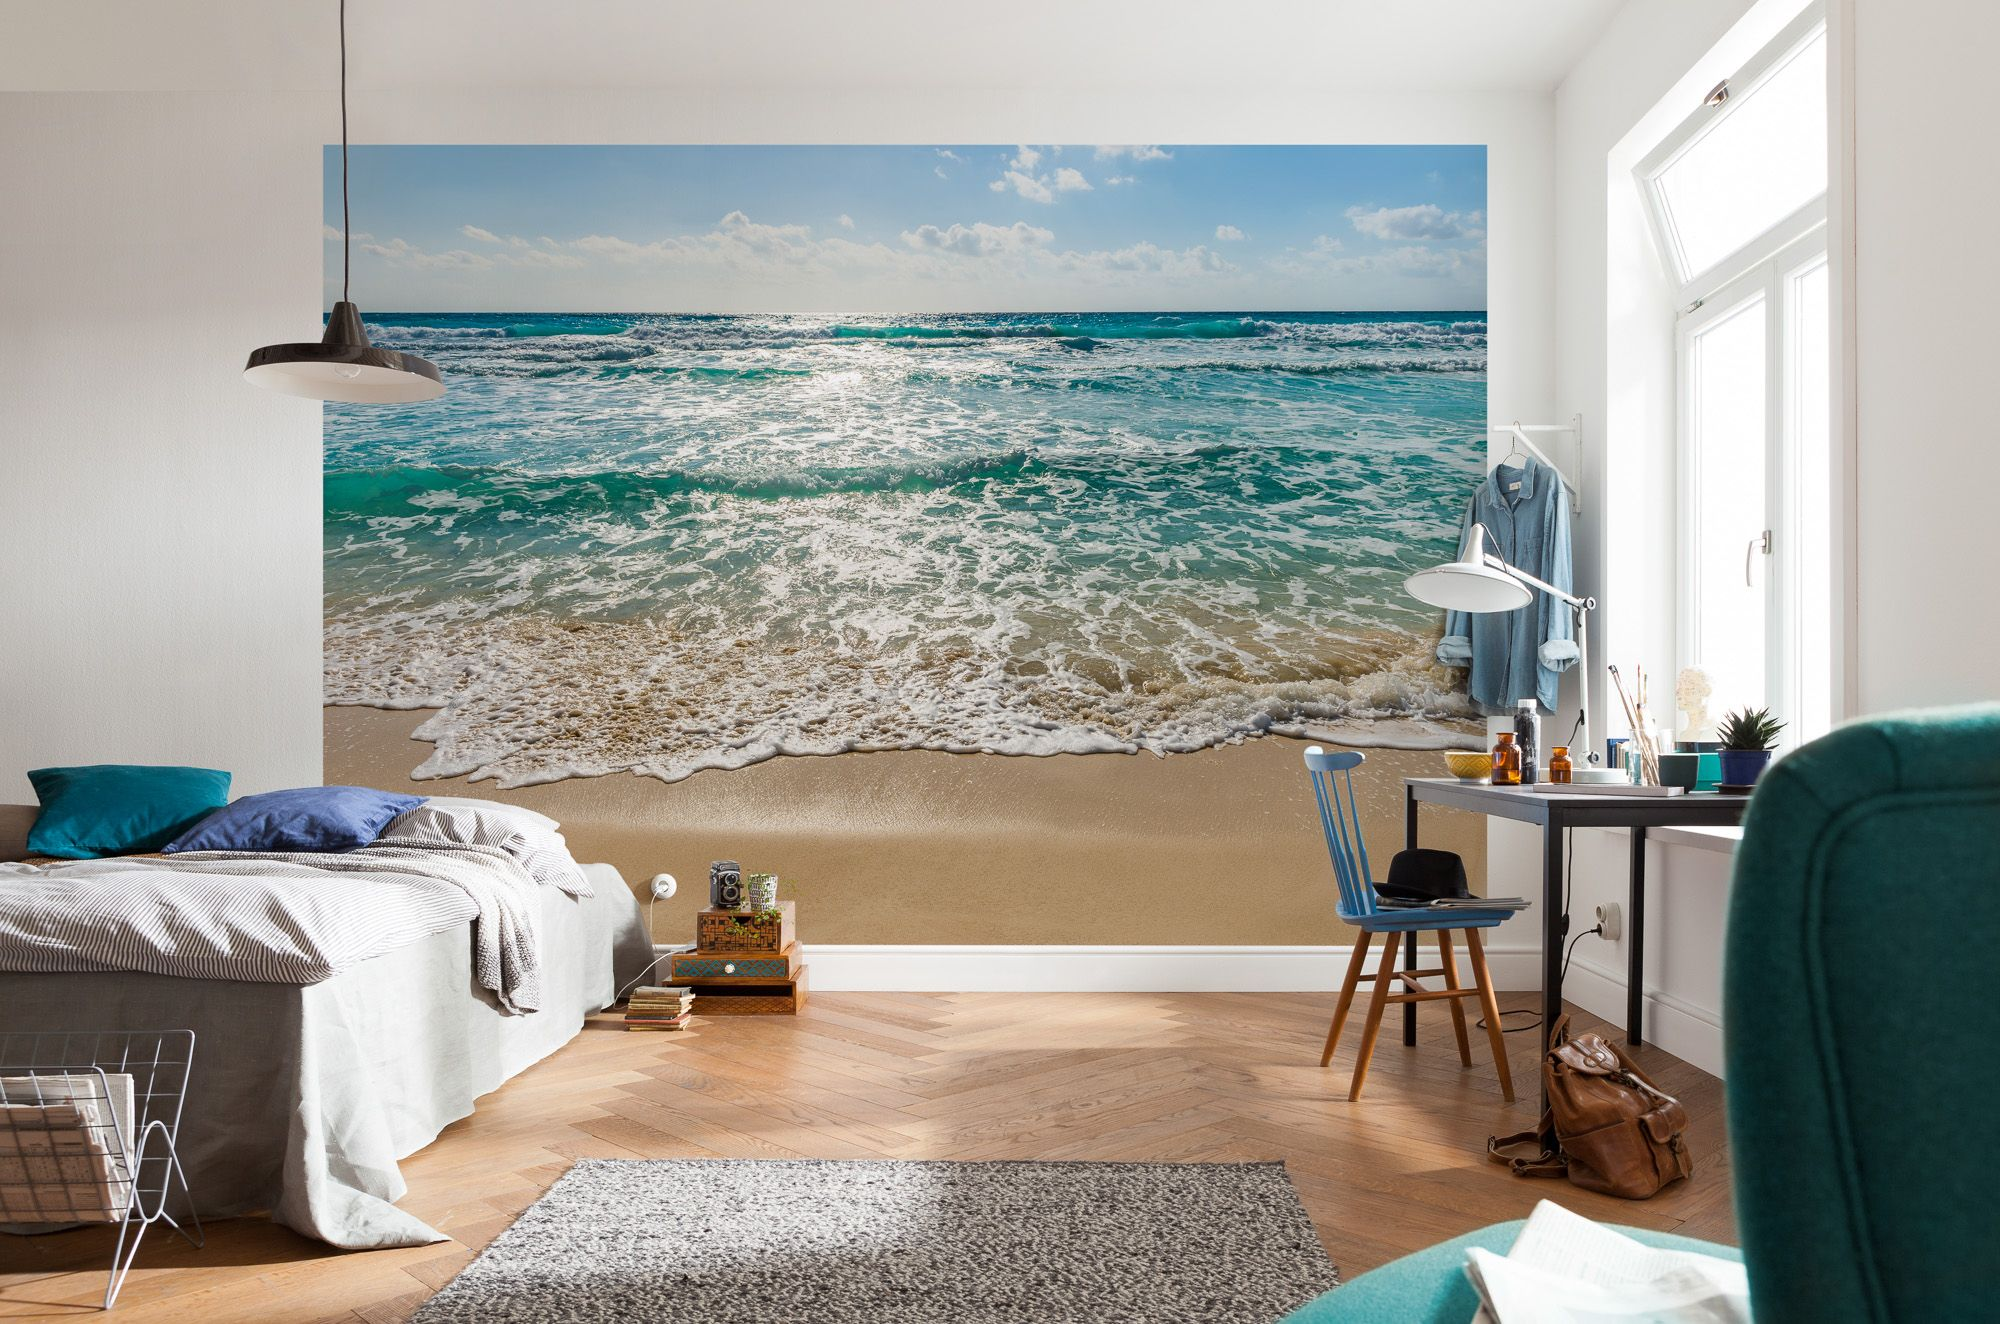 Seaside beach scene paper wallpaper homewallmurals